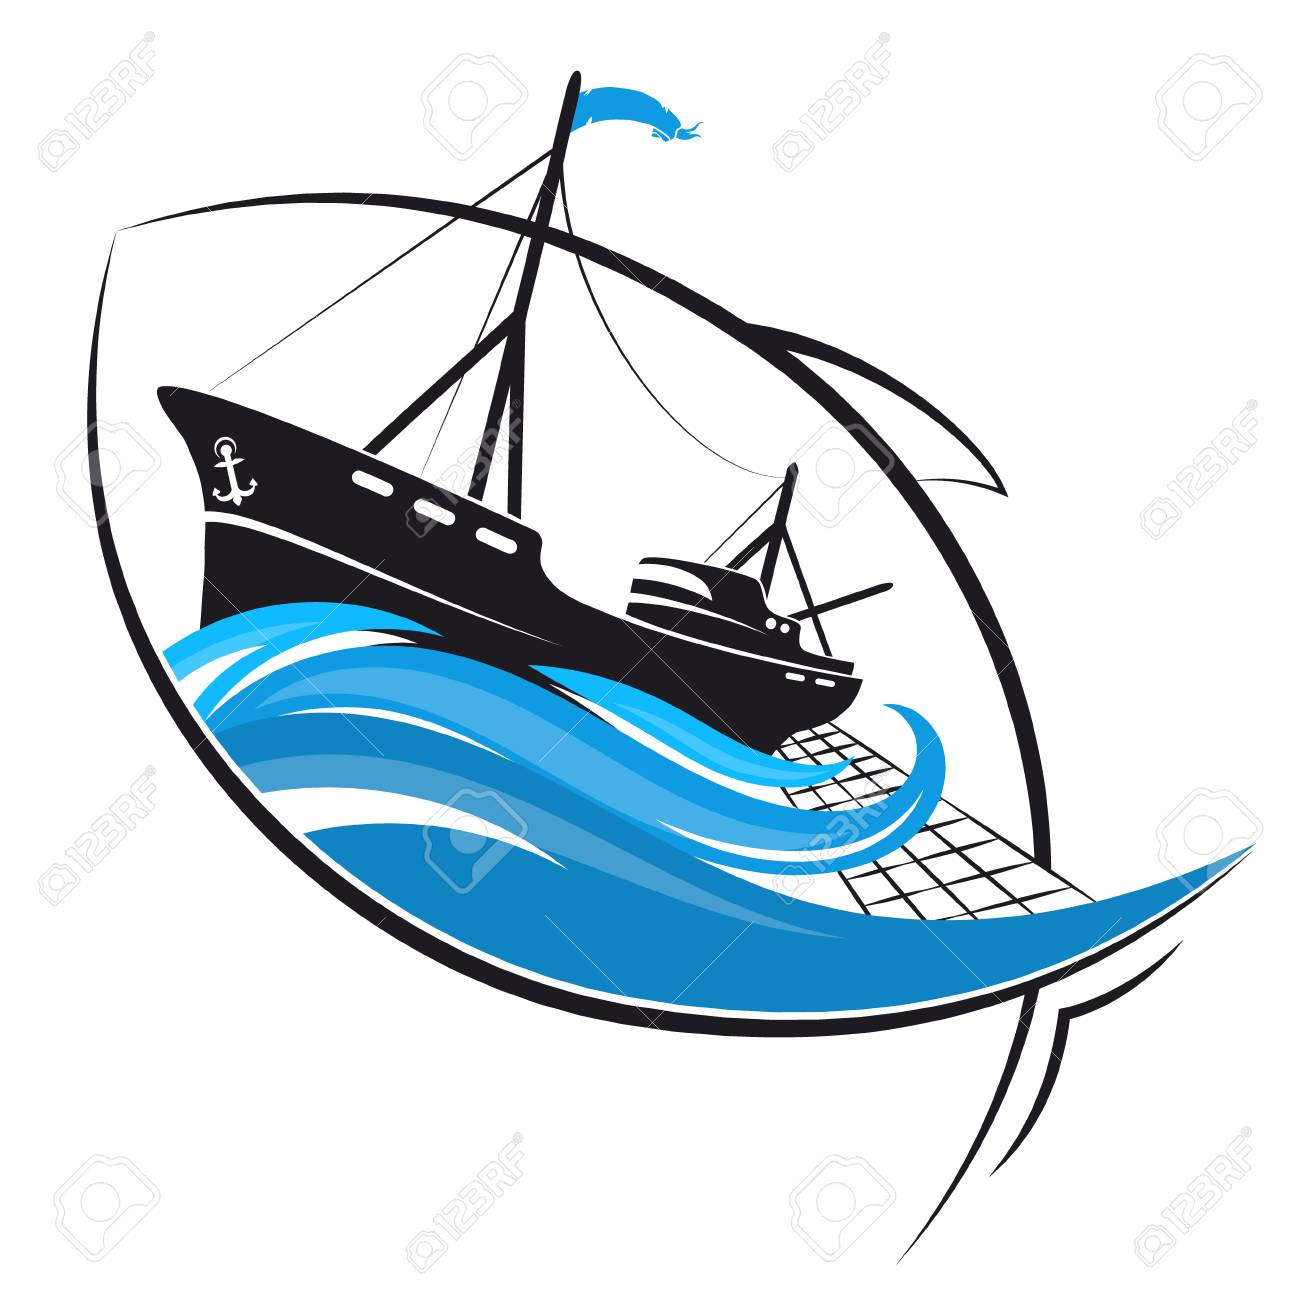 Fishing Boat On The Waves And Fish Silhouette Royalty Free Cliparts Vectors And Stock Illustration Image 113560777